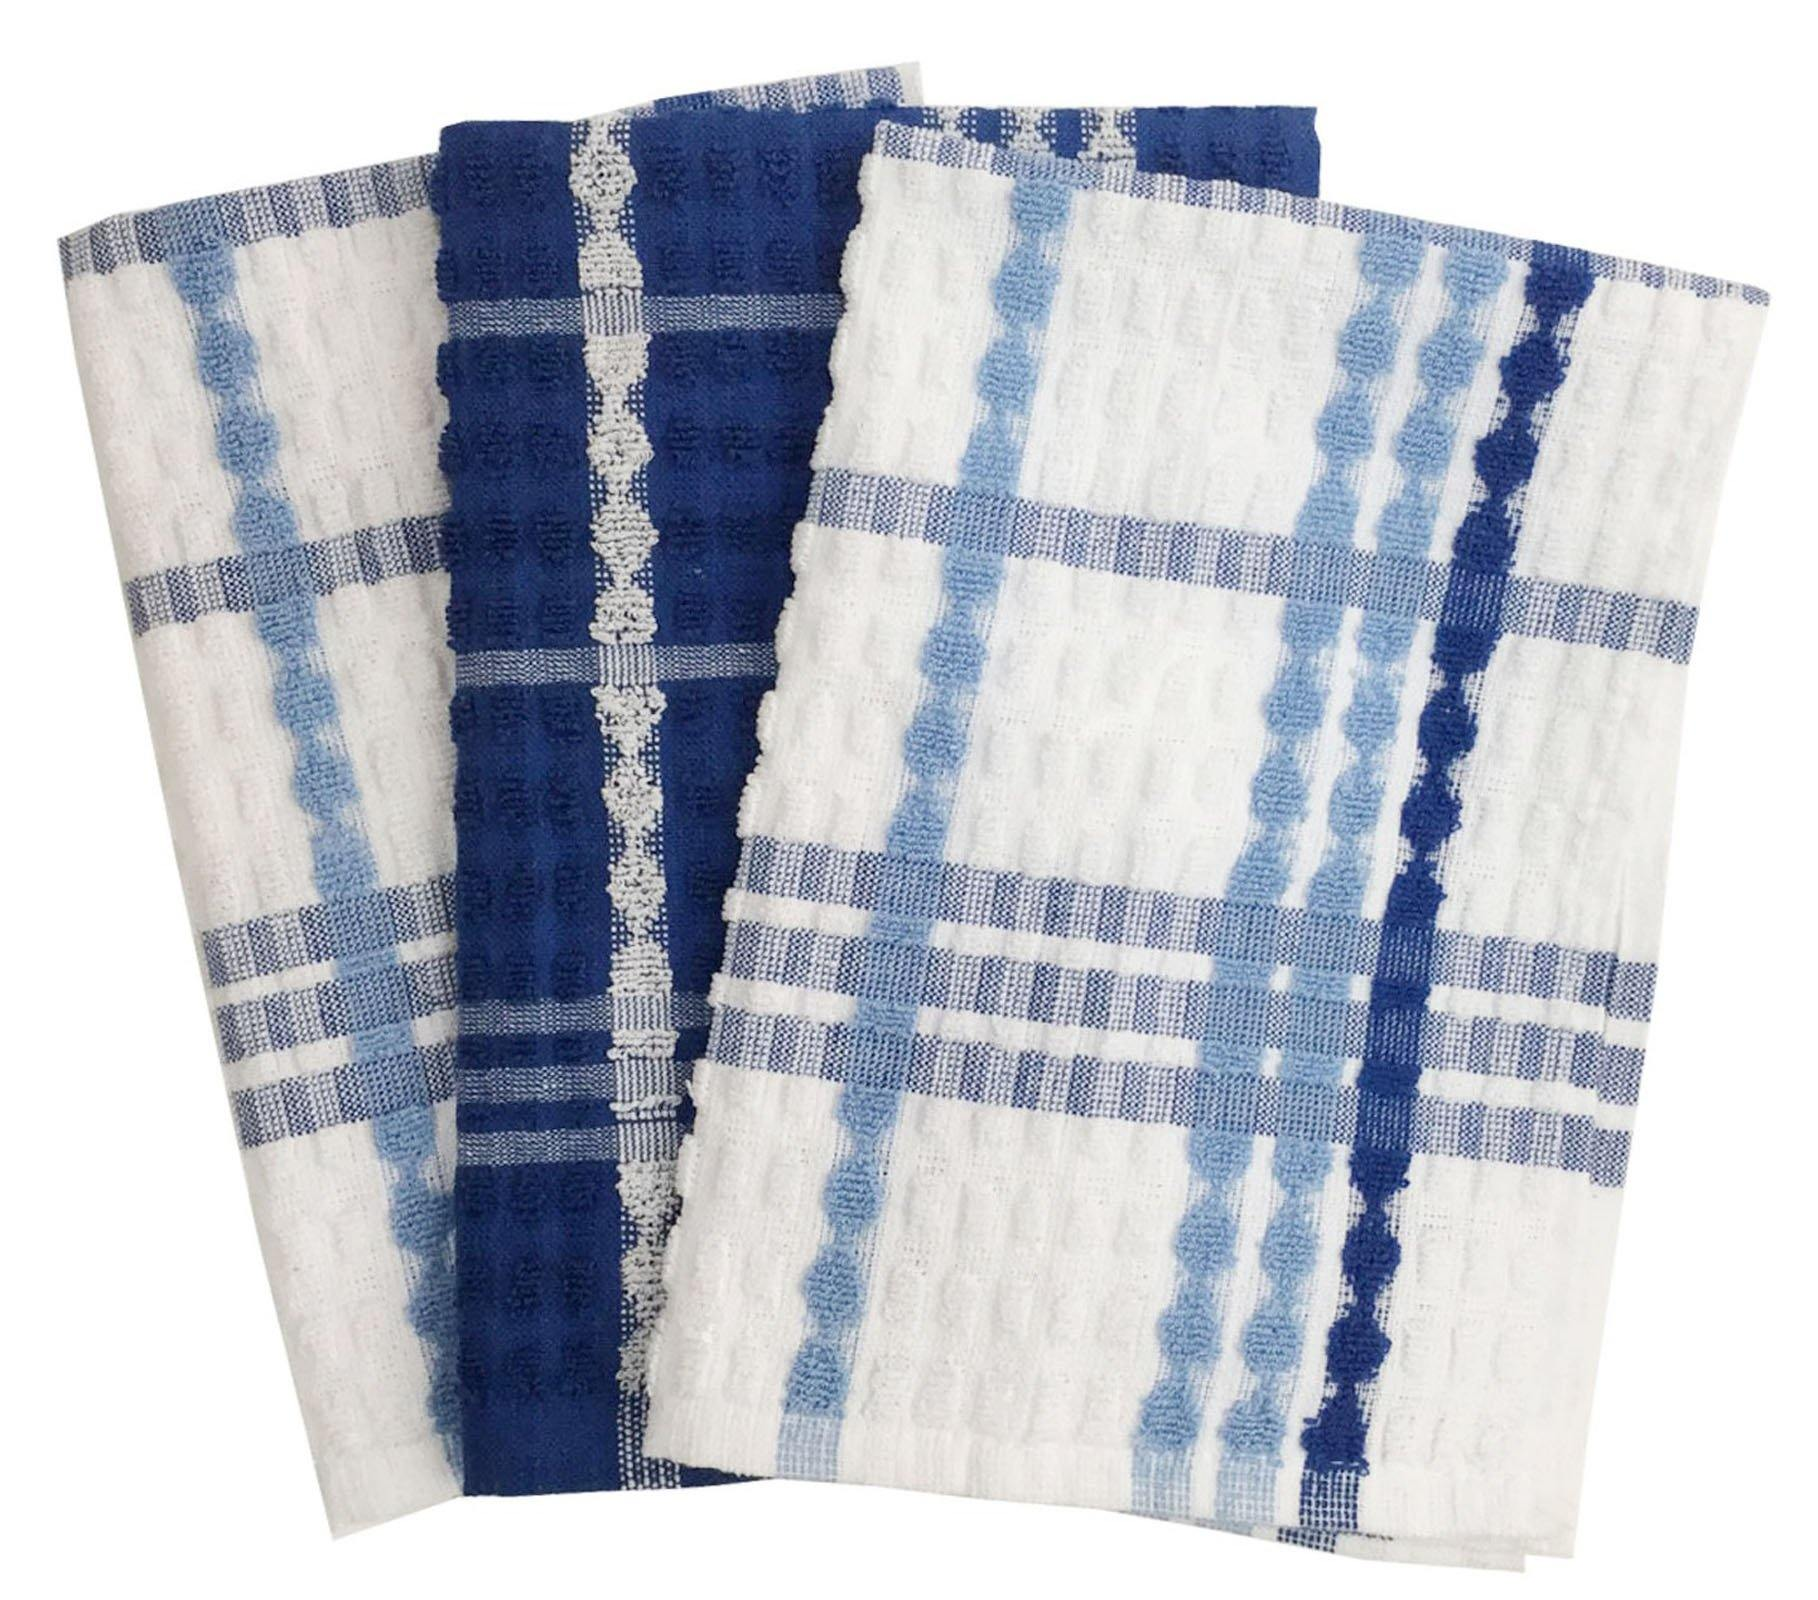 Lushomes Blue Terry Cotton Kitchen Tea Dish Hand Towel Rags Linen Set (Pack of 3) - Lushomes